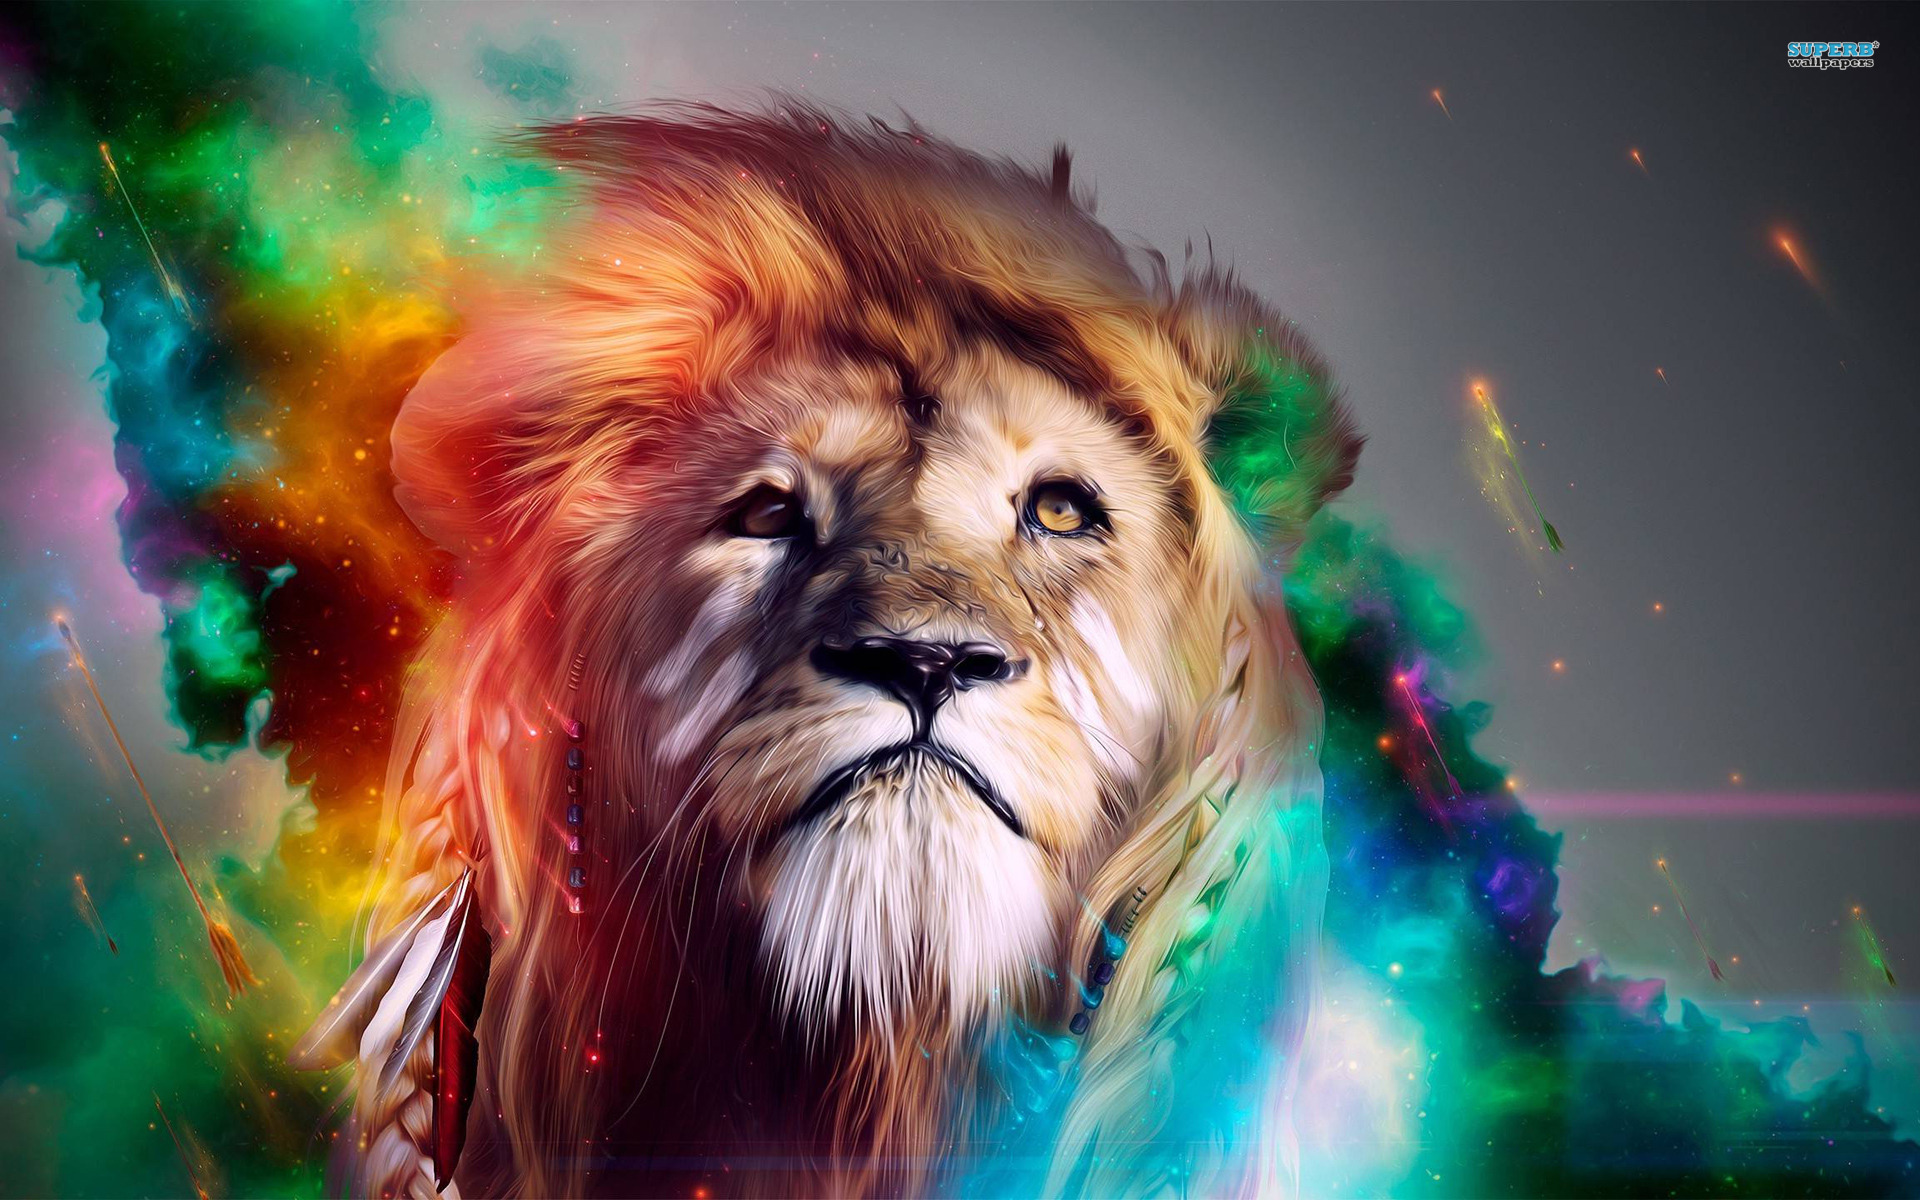 Lion wallpaper | 1920x1200 | #35555